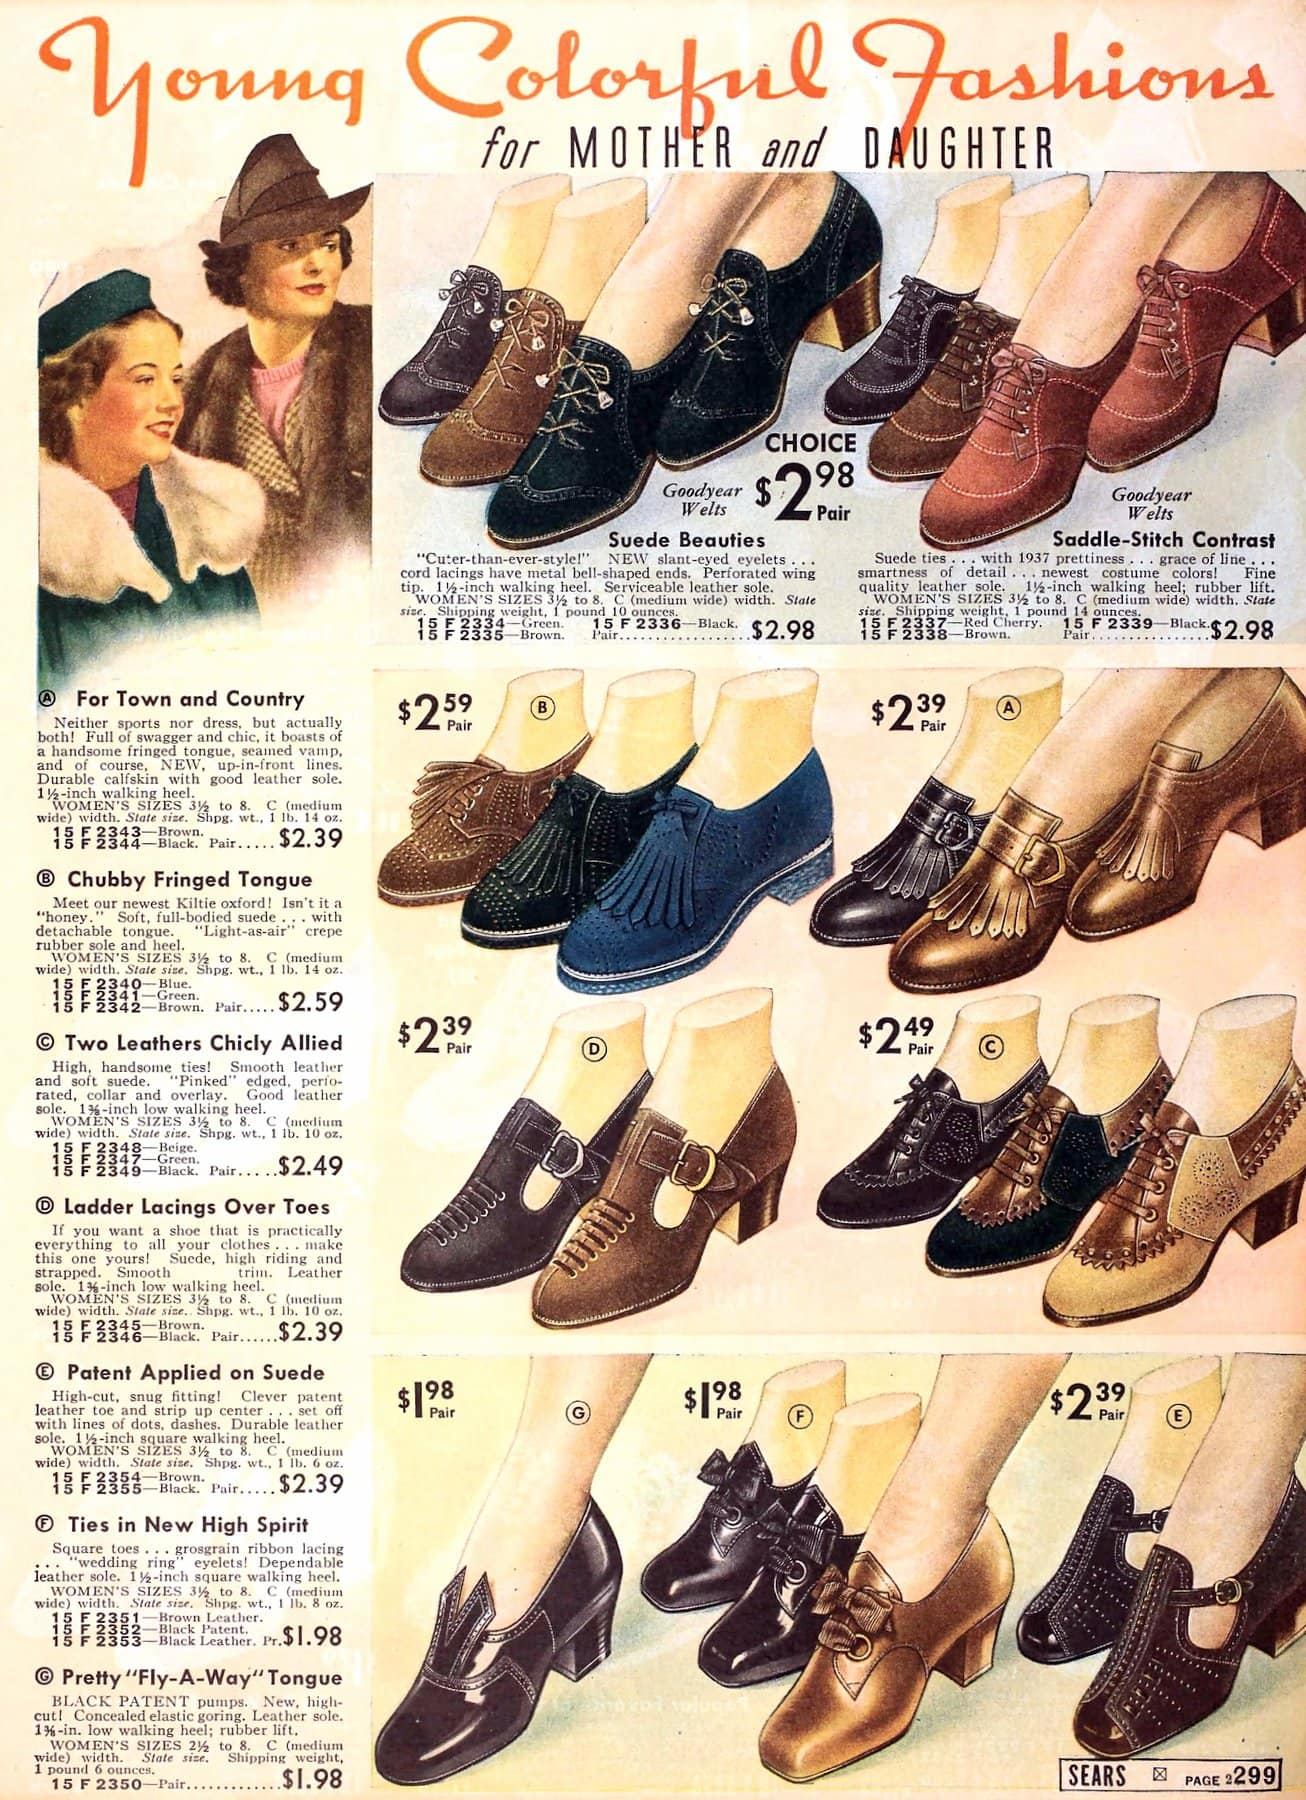 Classic 1930s shoes and heels for women from 1937 (1)